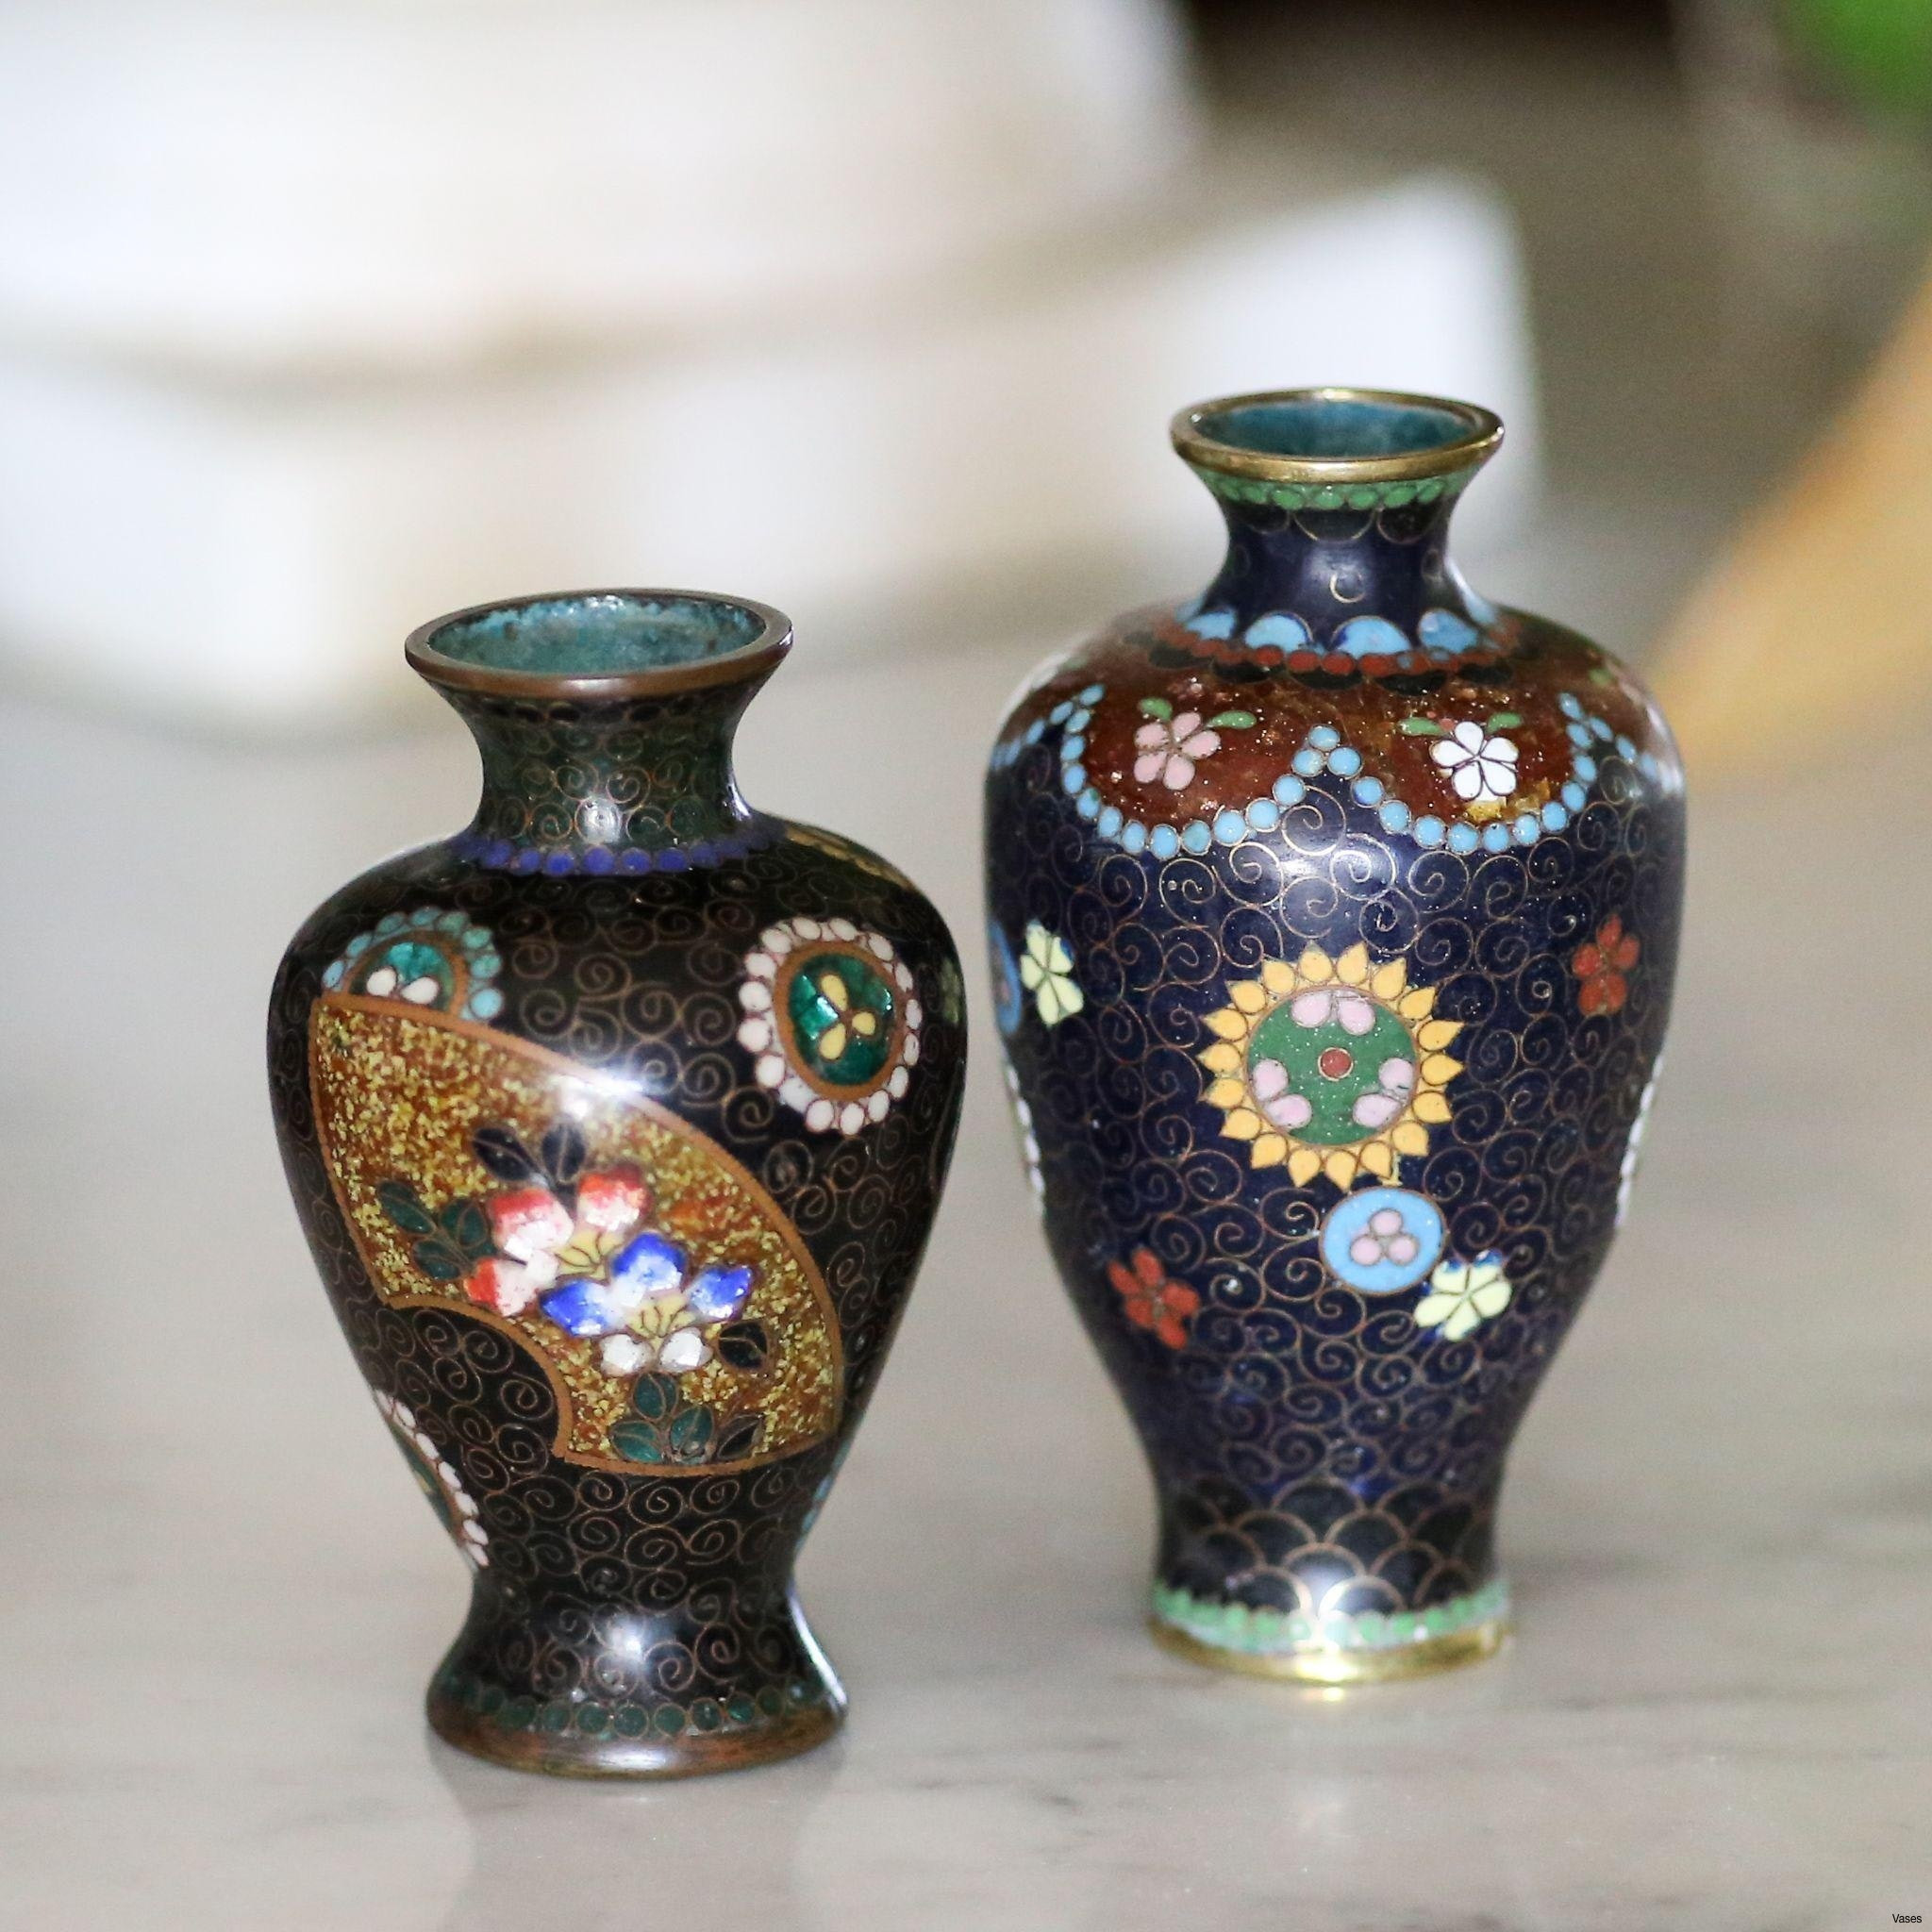 japanese floor vase of japanese interior awesome vases miniature cloisonne vase two antique intended for japanese interior awesome vases miniature cloisonne vase two antique japanese cloisonn from